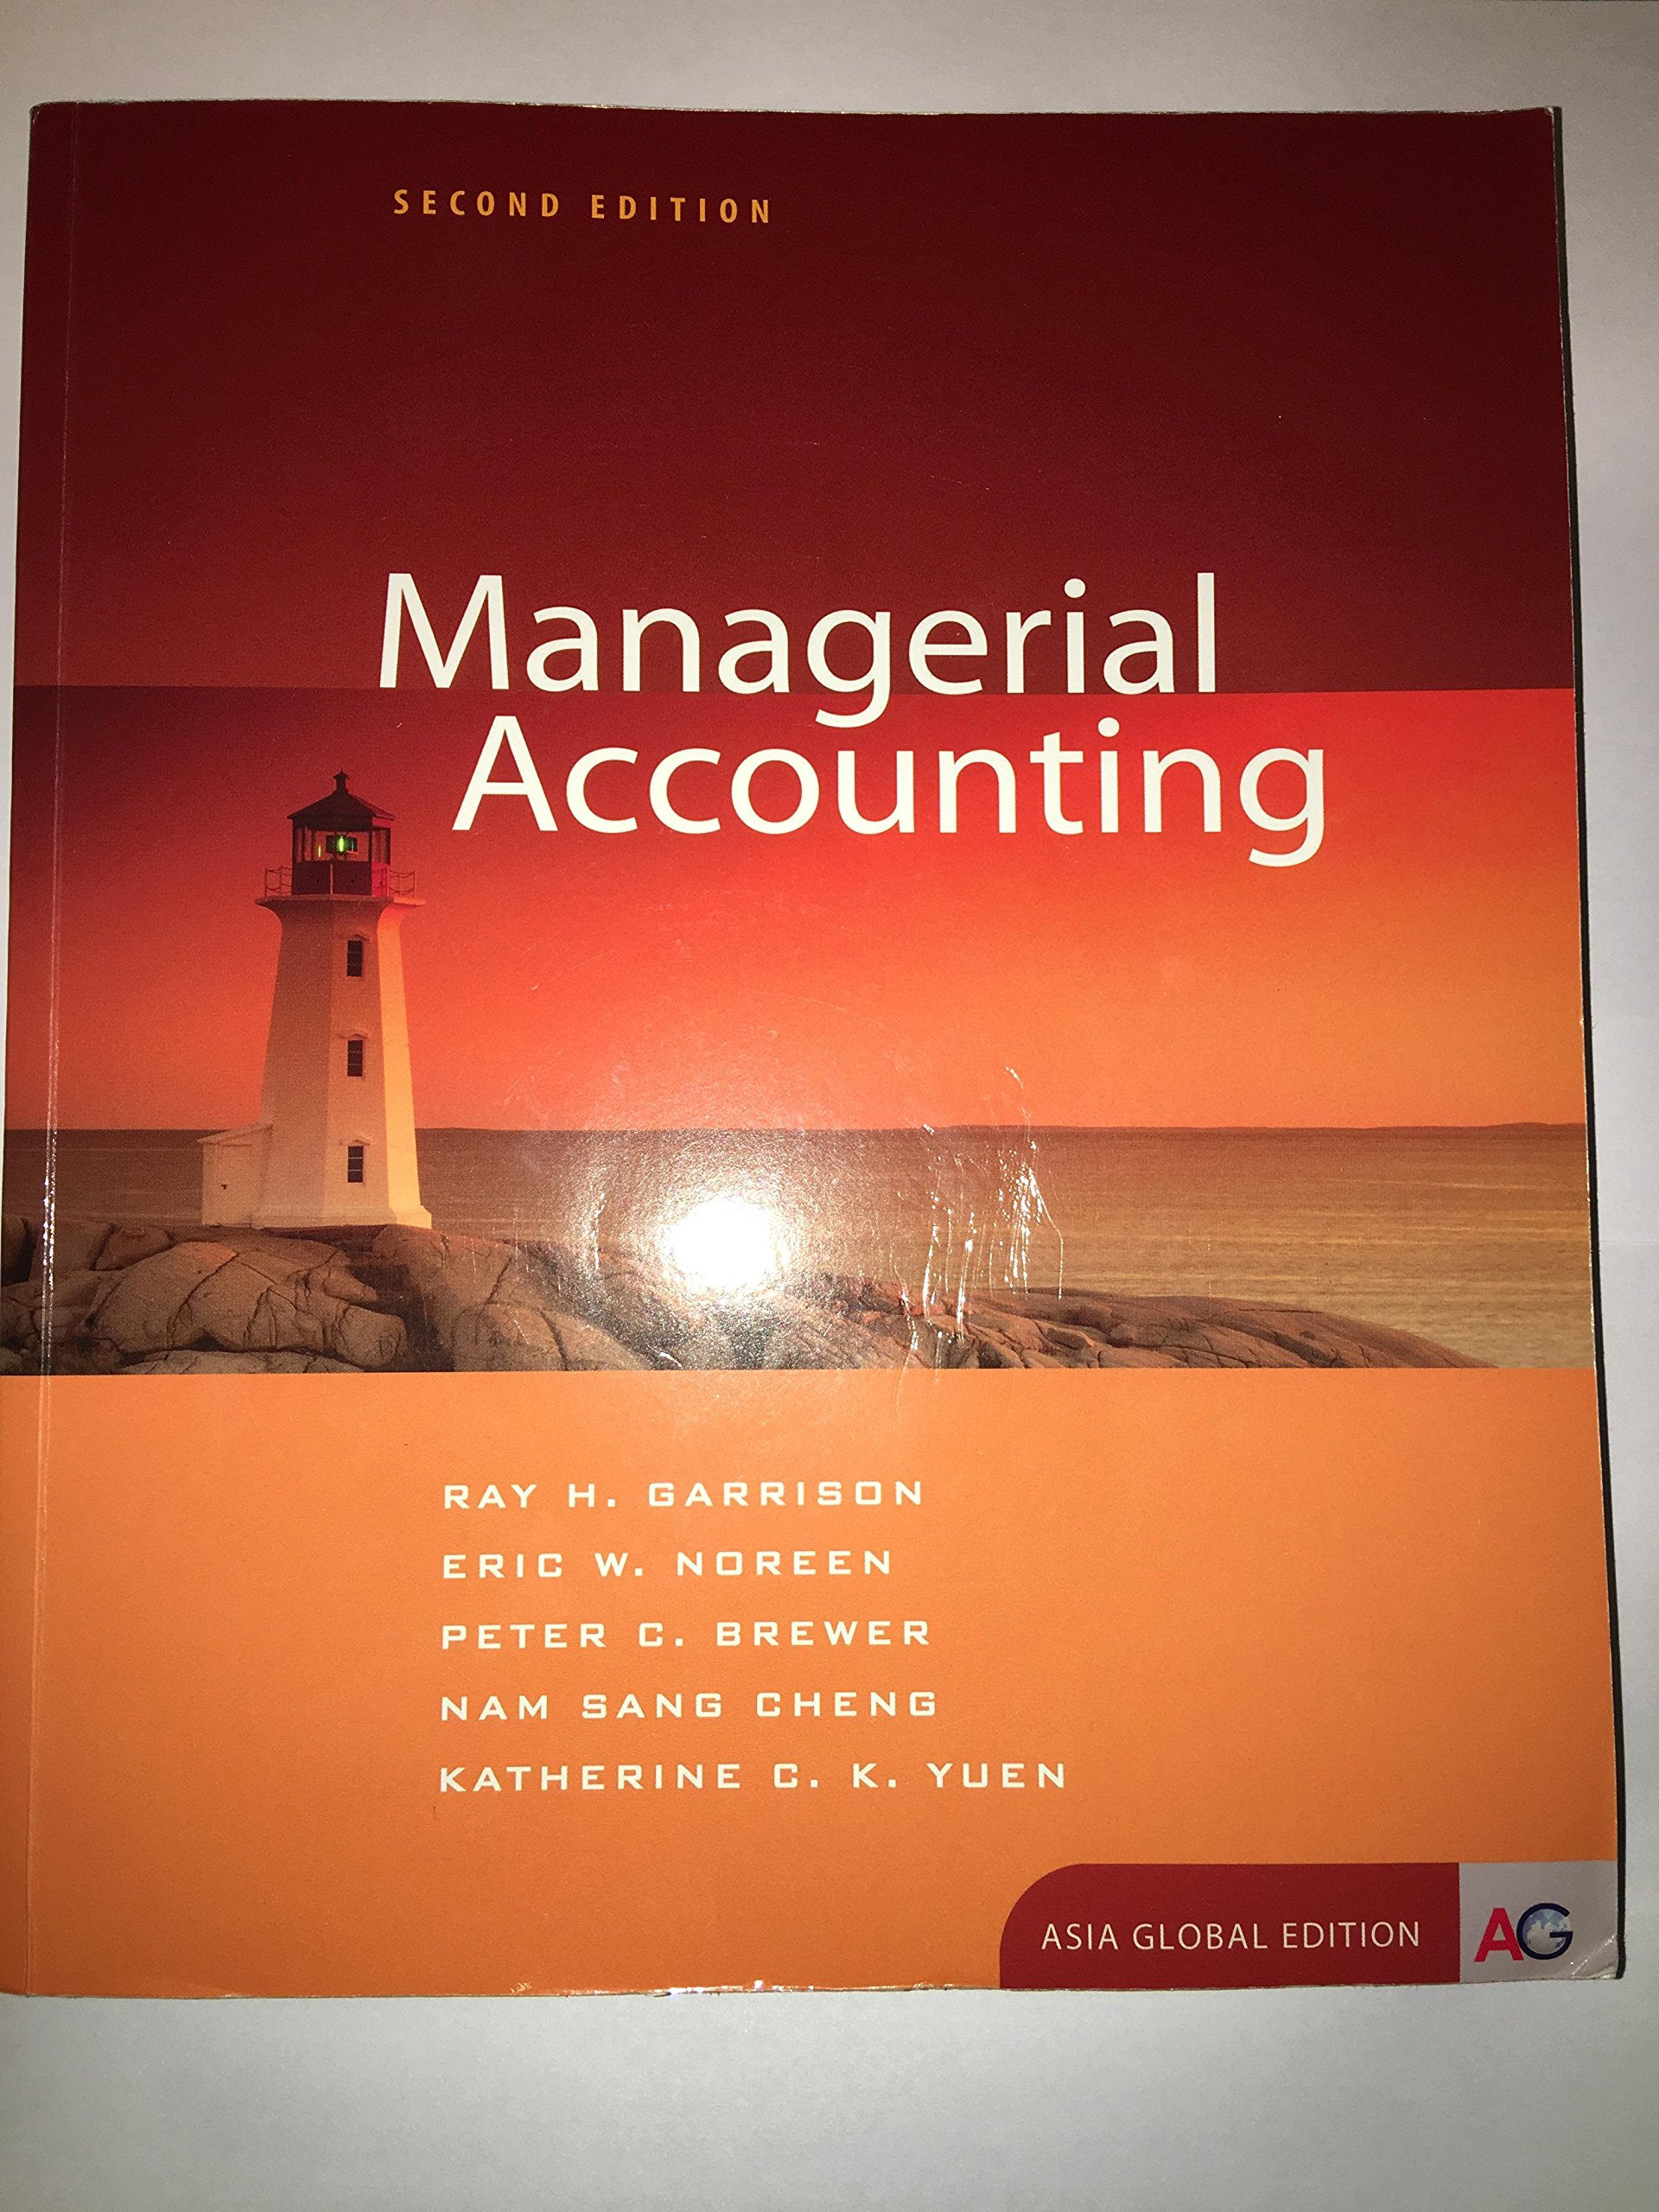 Managerial accounting ray h garrison eric w noreen peter c managerial accounting ray h garrison eric w noreen peter c brewer nam sang cheng katherine c k yuen 9781259011825 amazon books fandeluxe Image collections